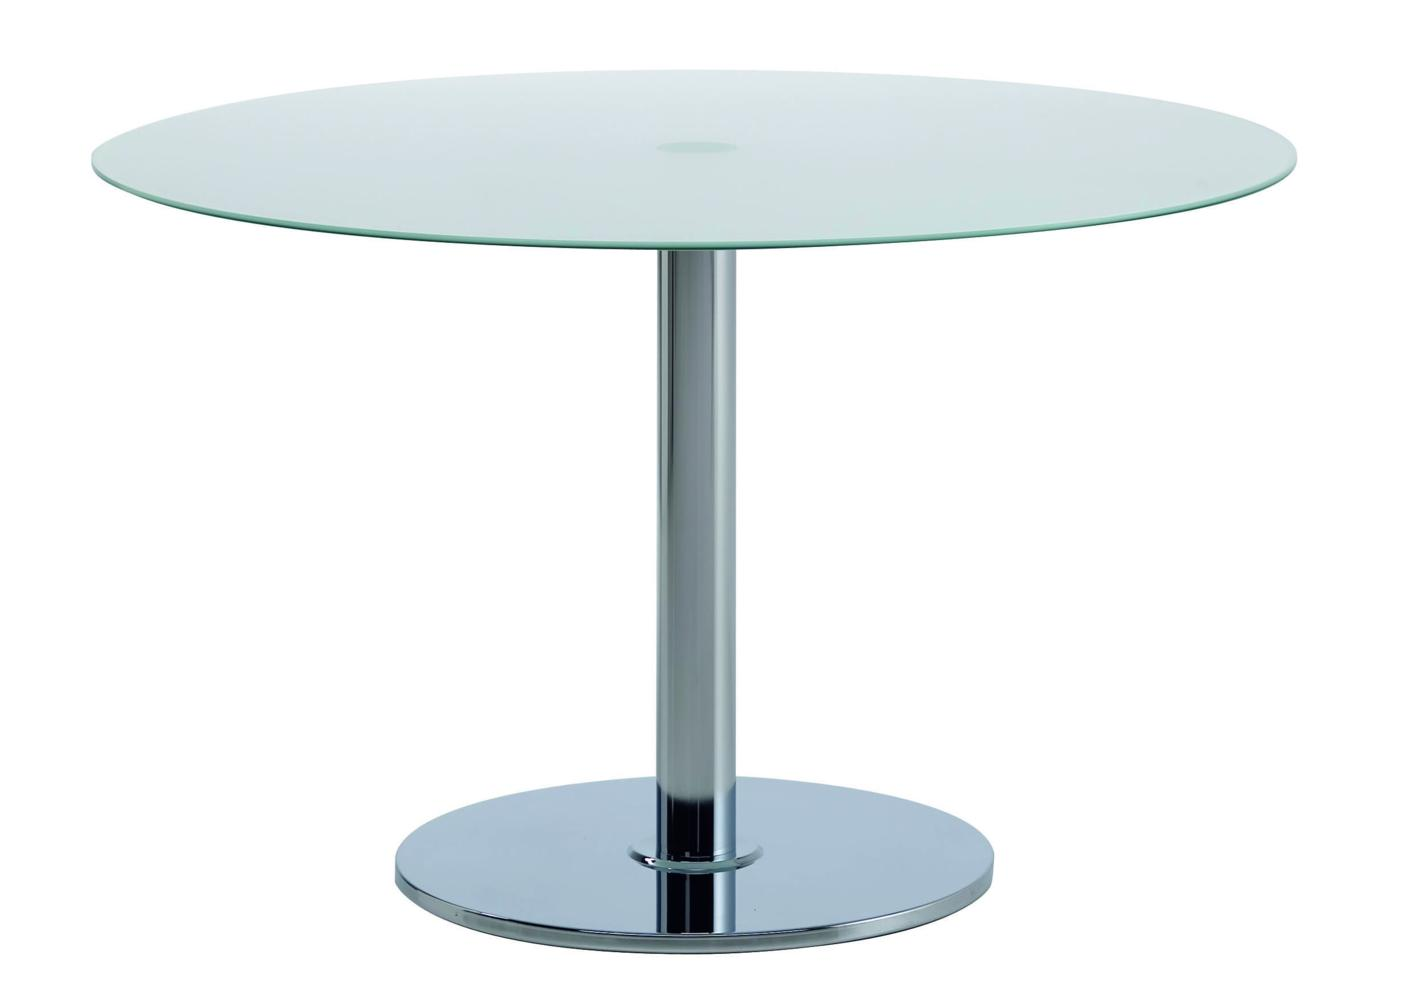 Table ronde pied central bois massif images - Table ronde pied central inox ...